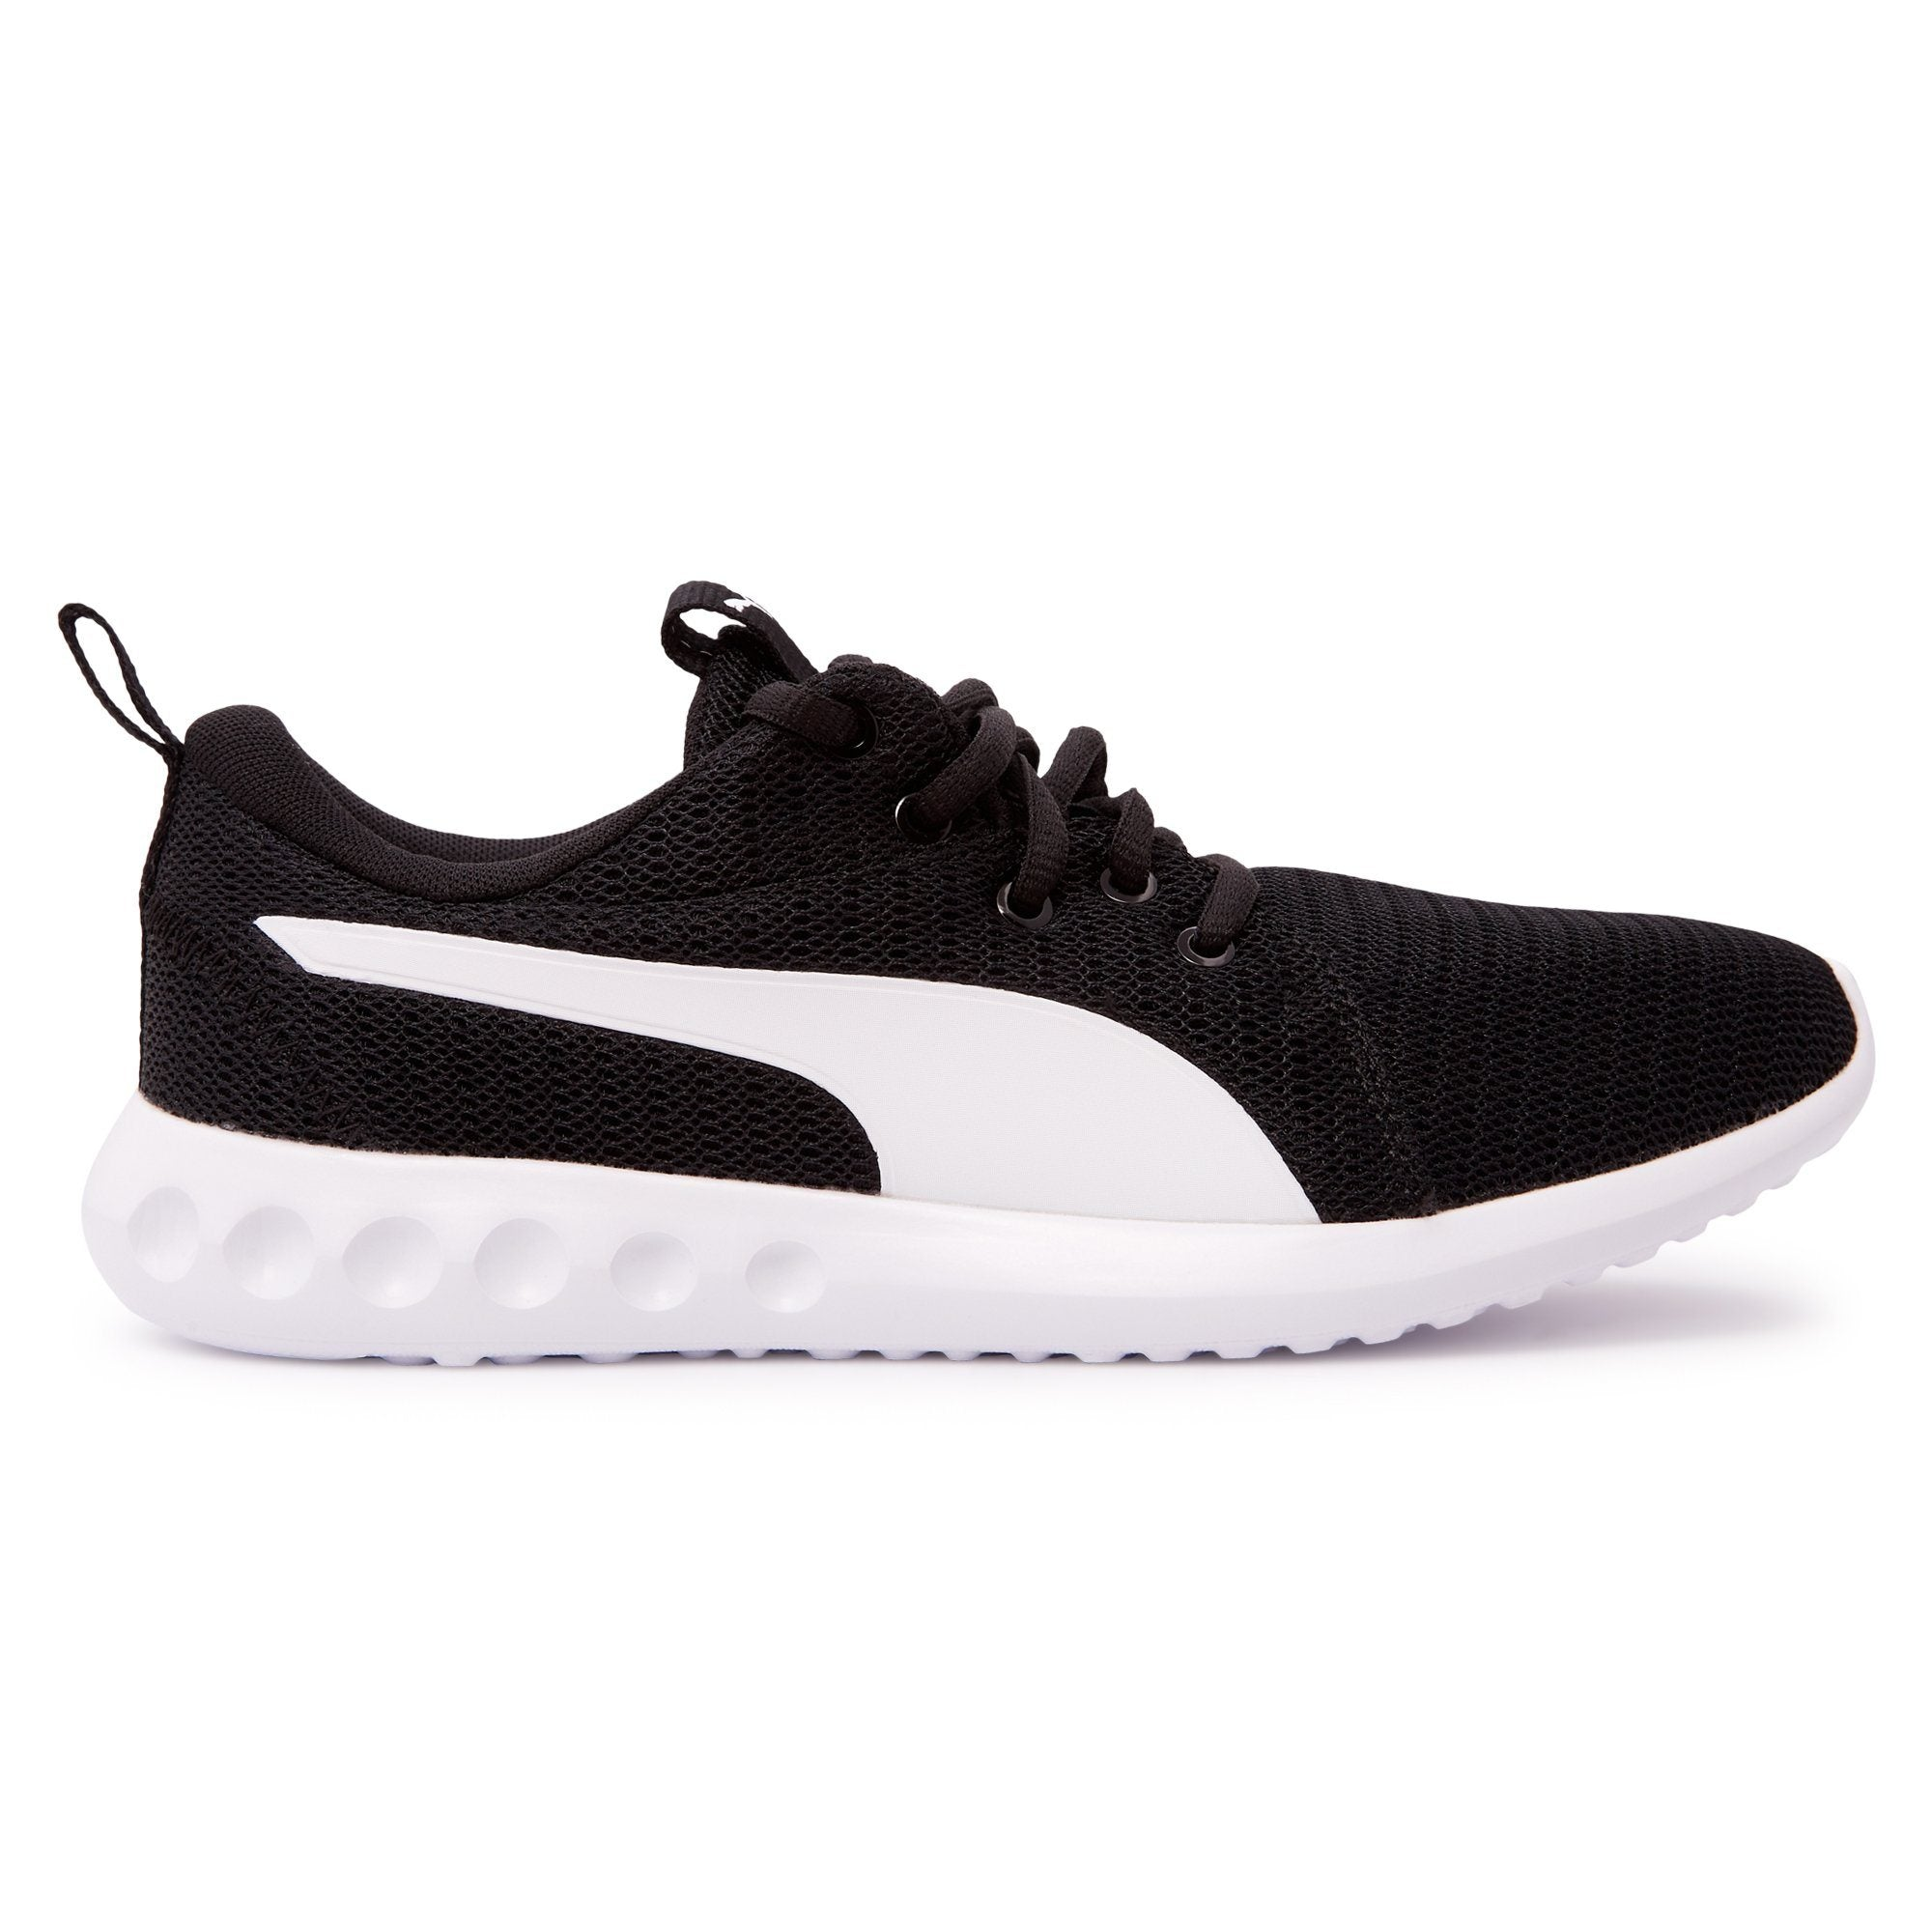 Puma Juniors Carson 2 Jr - Black/White Puma